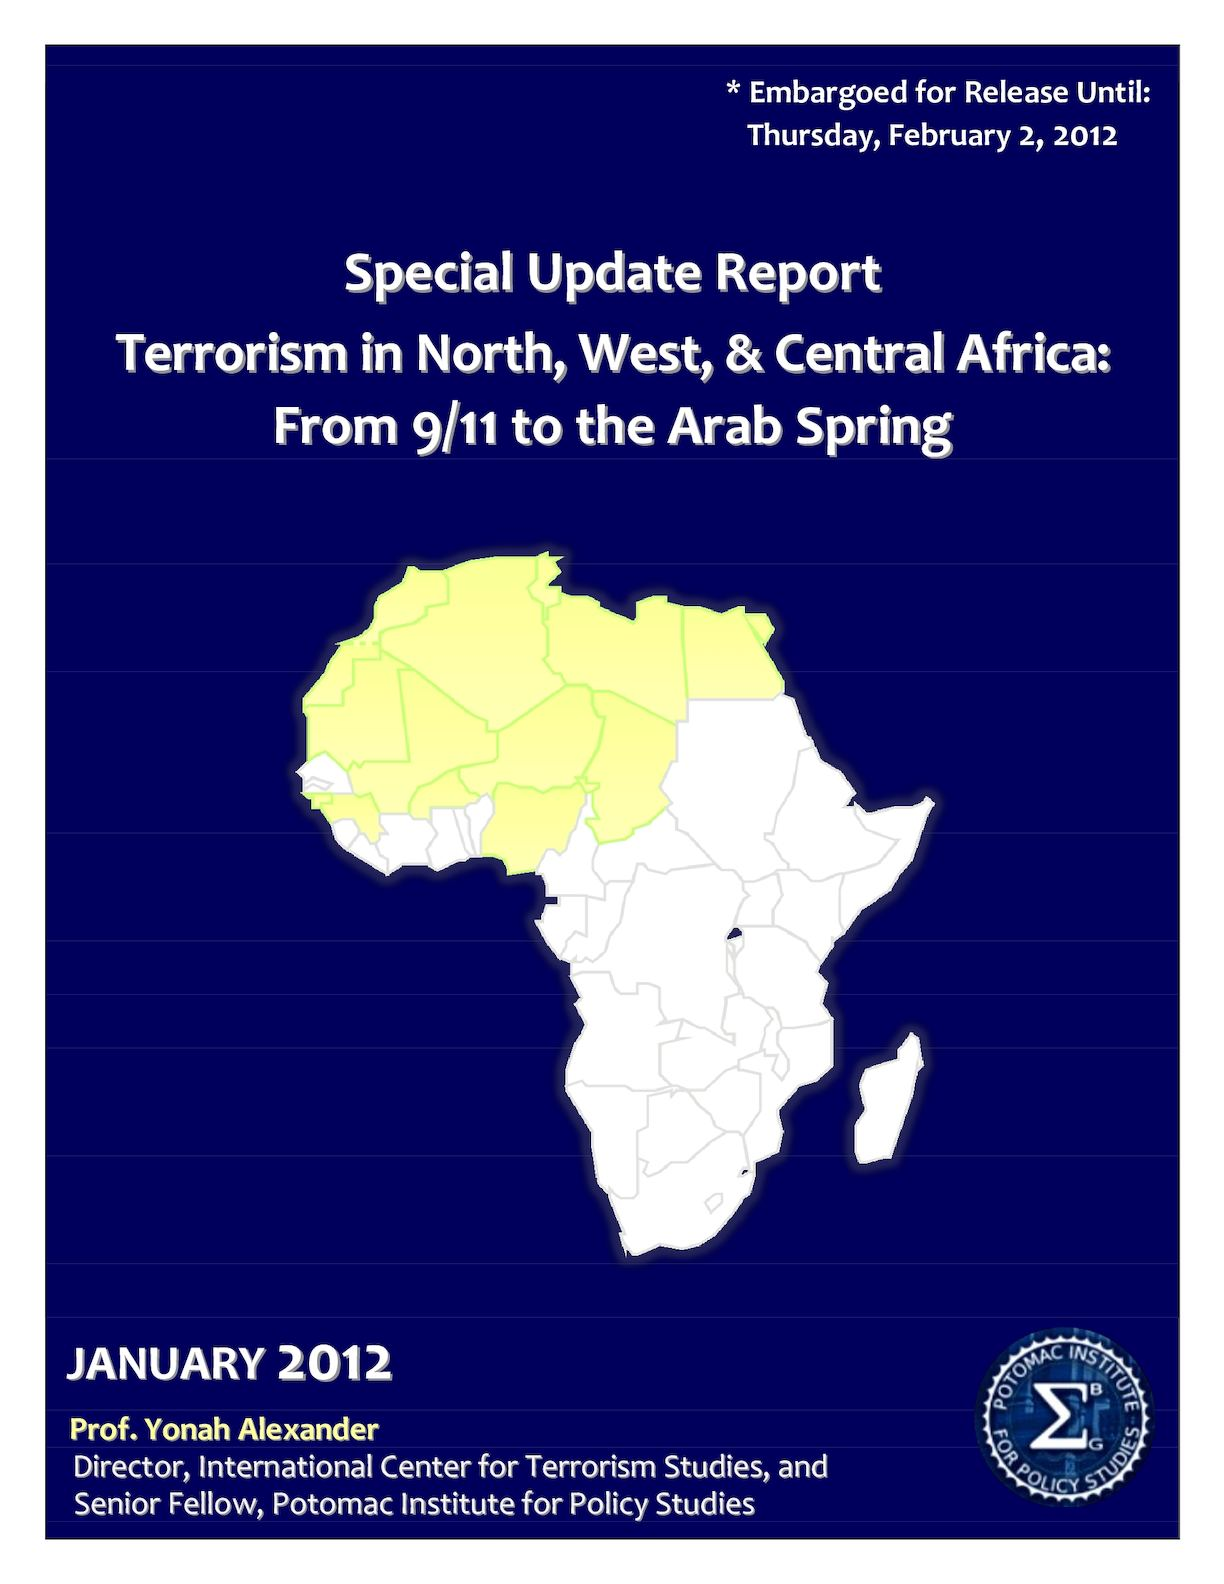 2012 Special Update Report 'Terrorism In N W & C Africa From 9 11 To Arab Spring' ICTS Potomac FINAL EMBARGOED 31Jan2012